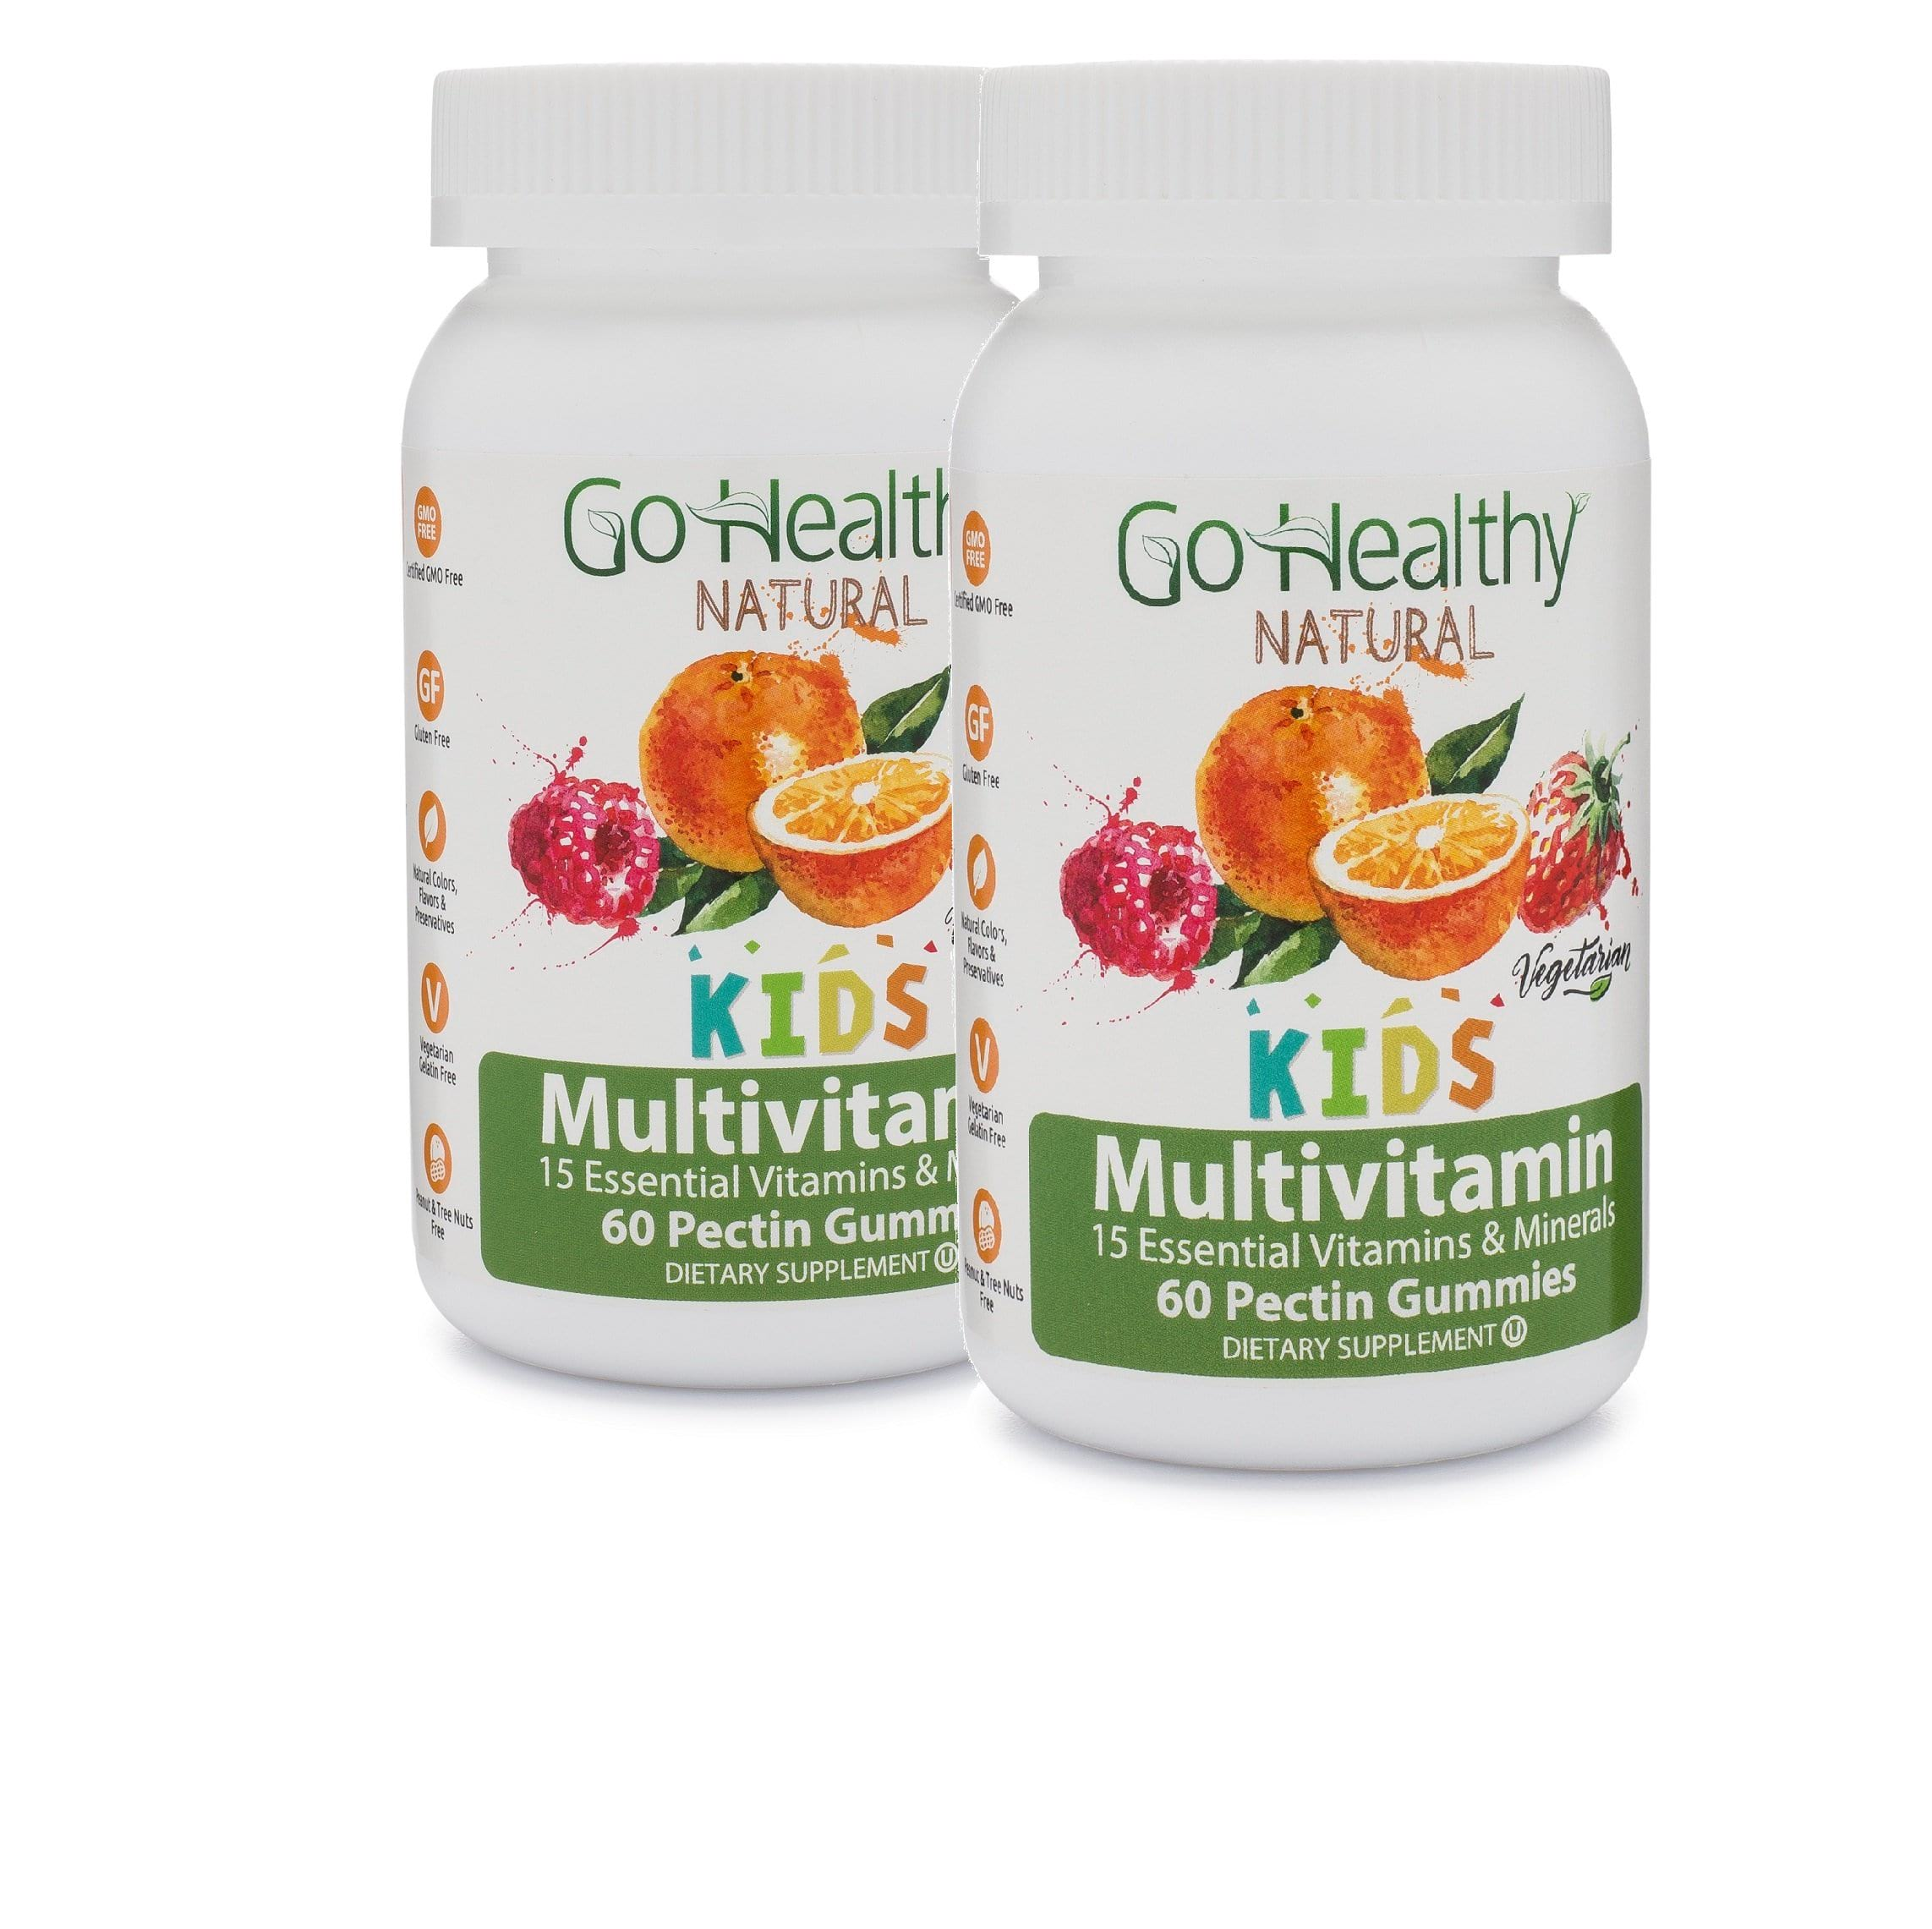 Multivitamin Gummies for Kids, Pectin-Based, Vegetarian Kosher 15 Vitamins- 2 Bottles (120)- 60 Daily Servings